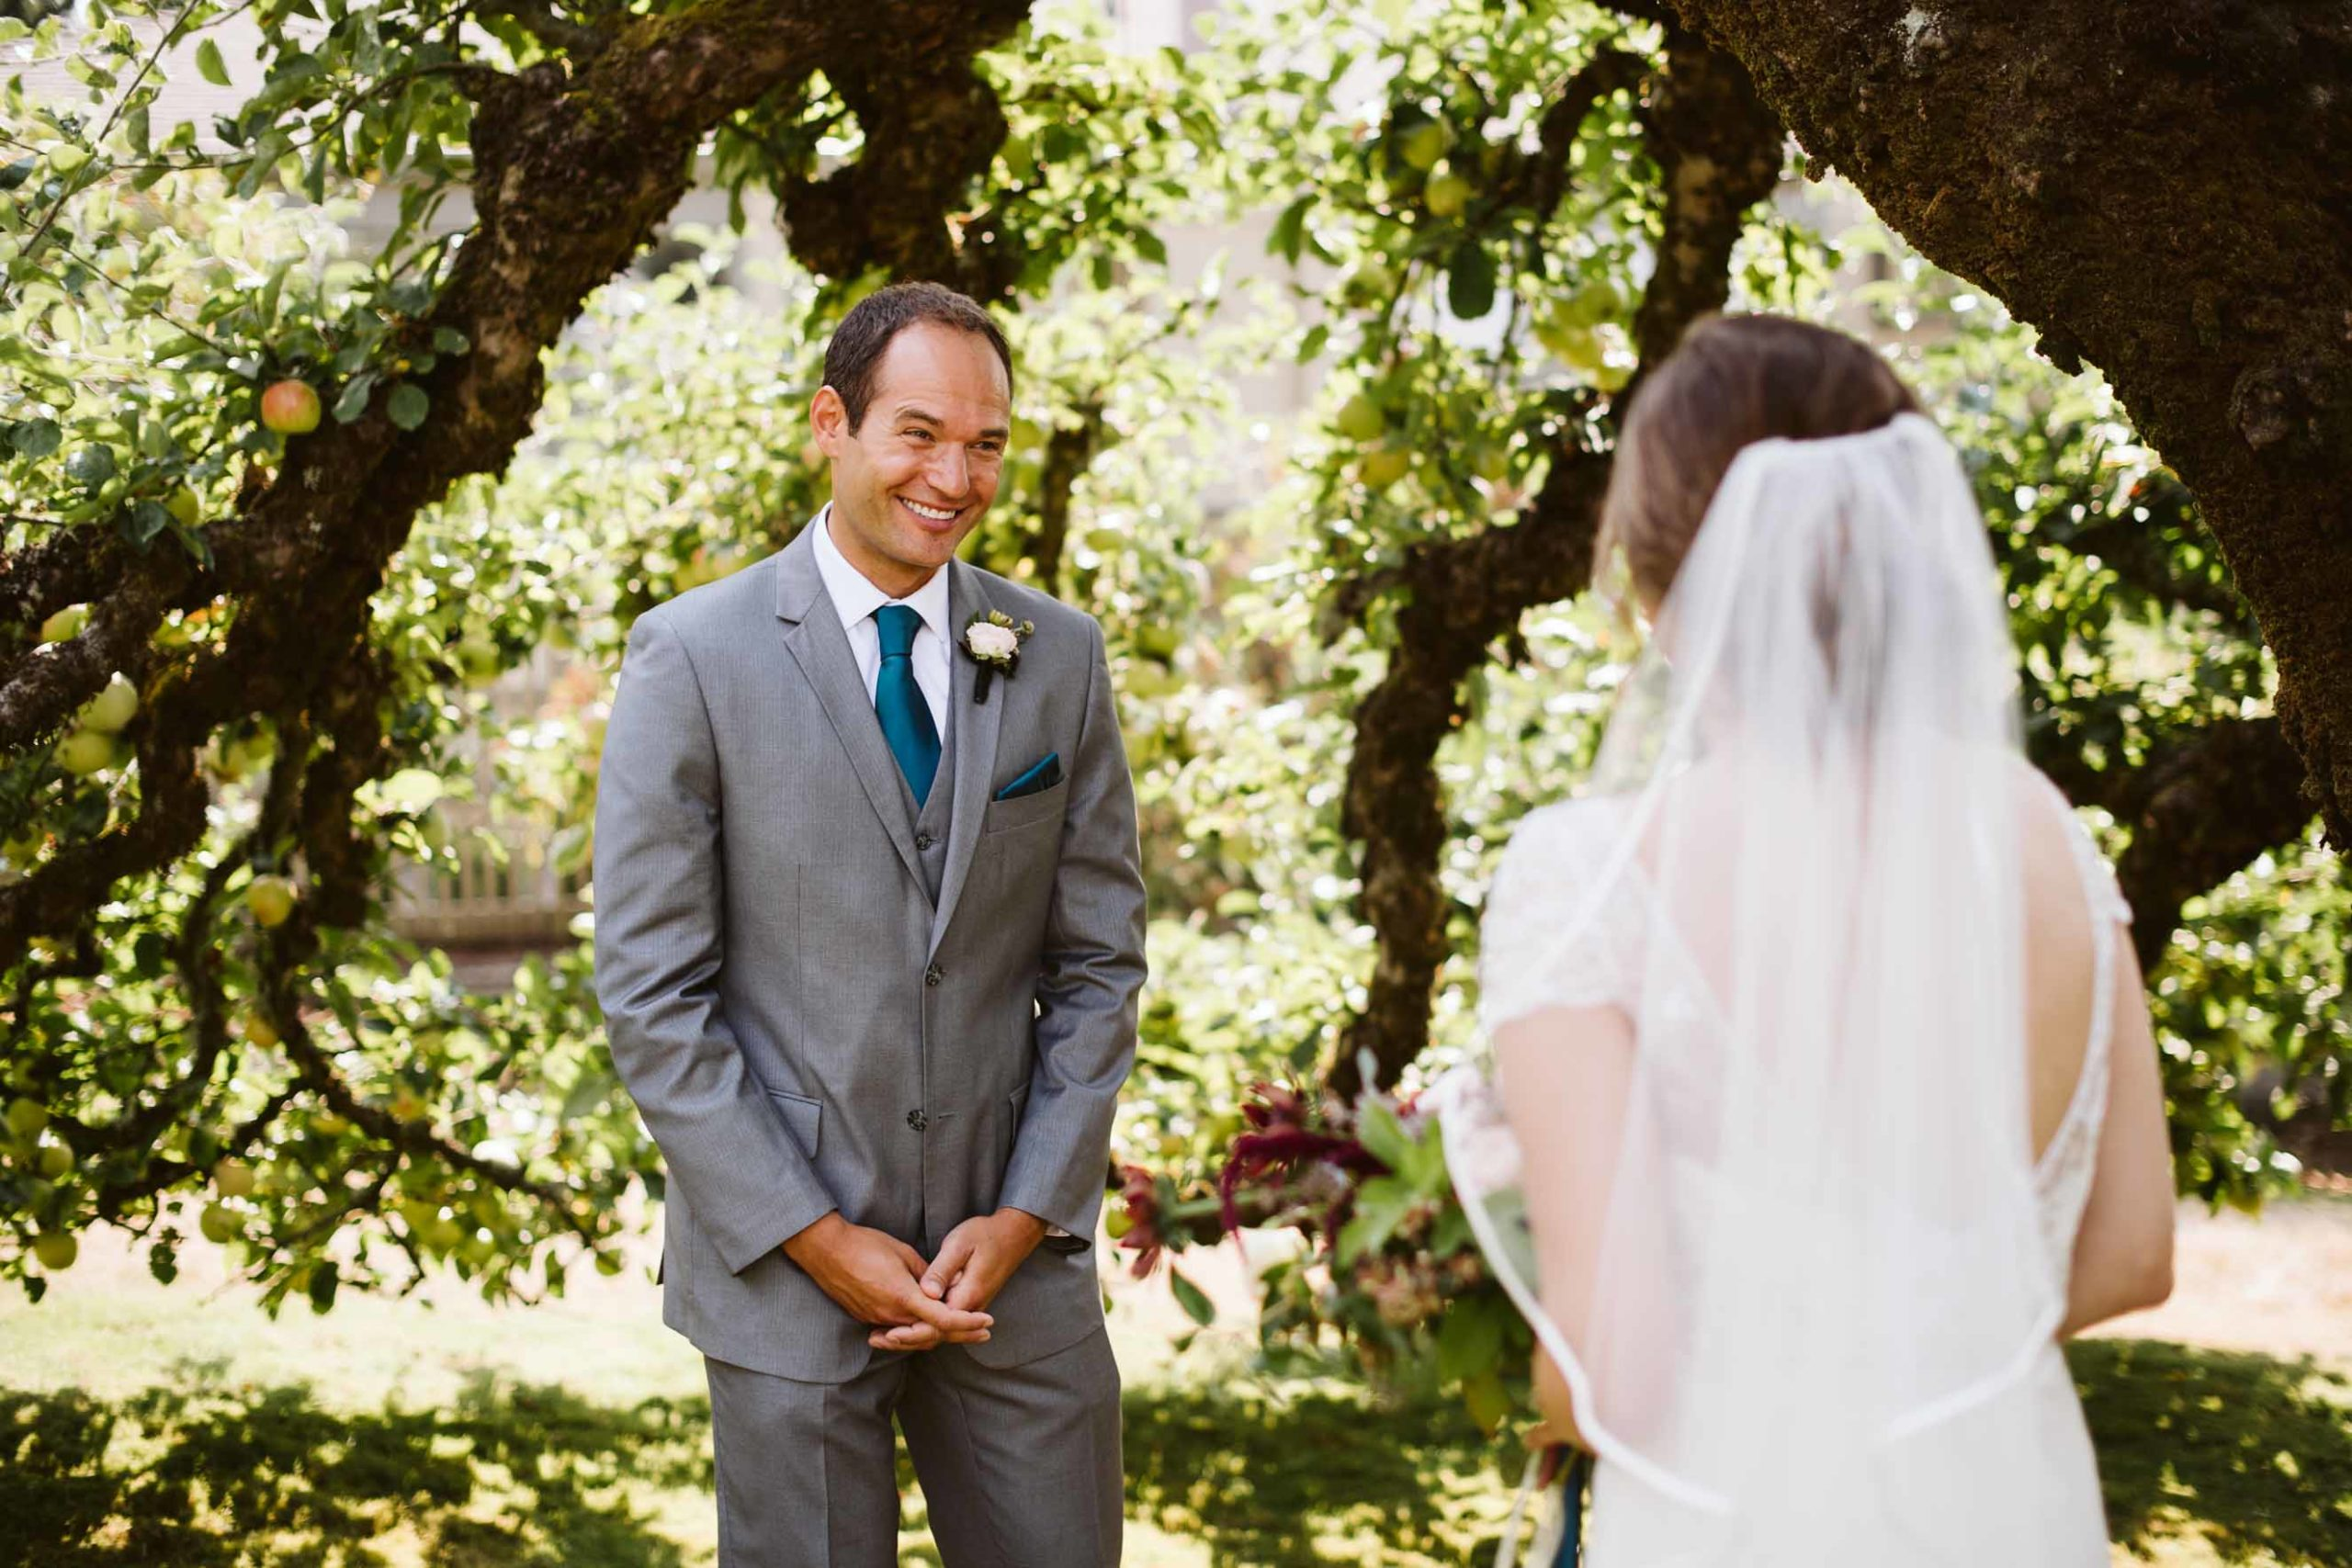 Grooms first look at his bride in an orchard on Lake Washington